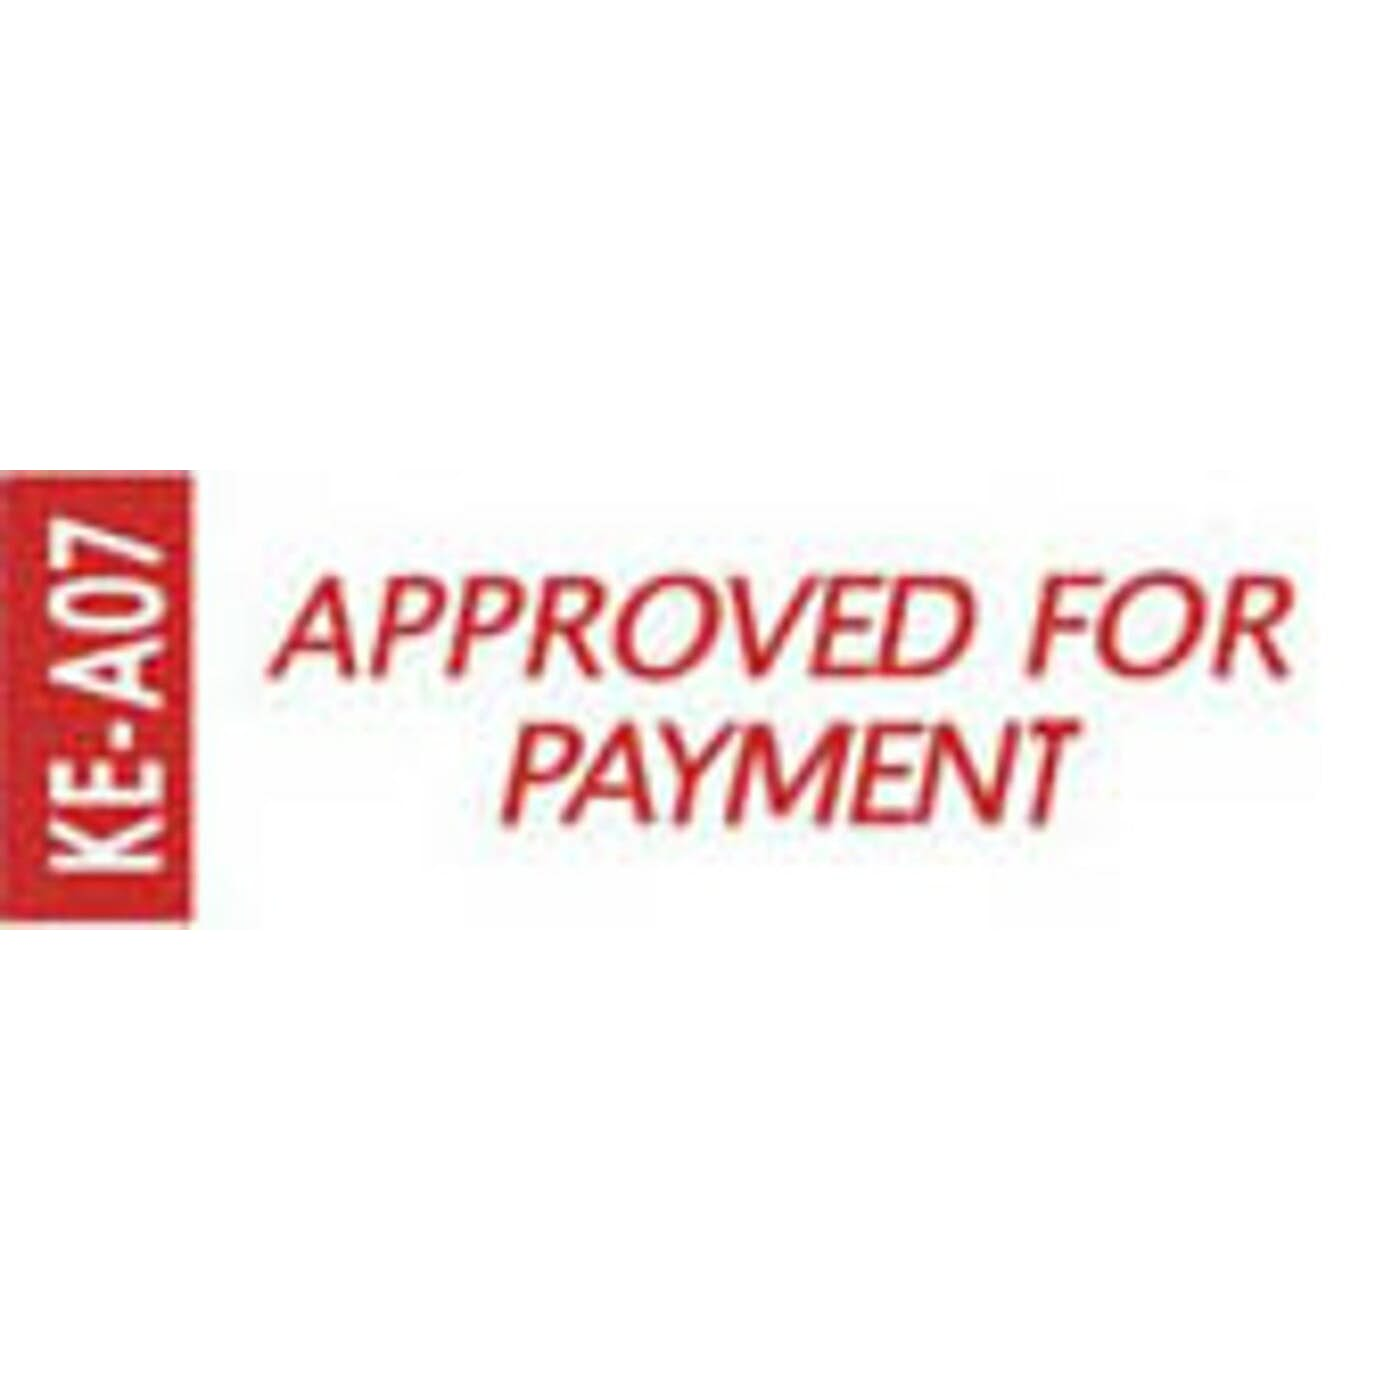 DESKMATE SELF-INKING STAMPS (APPROVED FOR PAYMENT - RED)